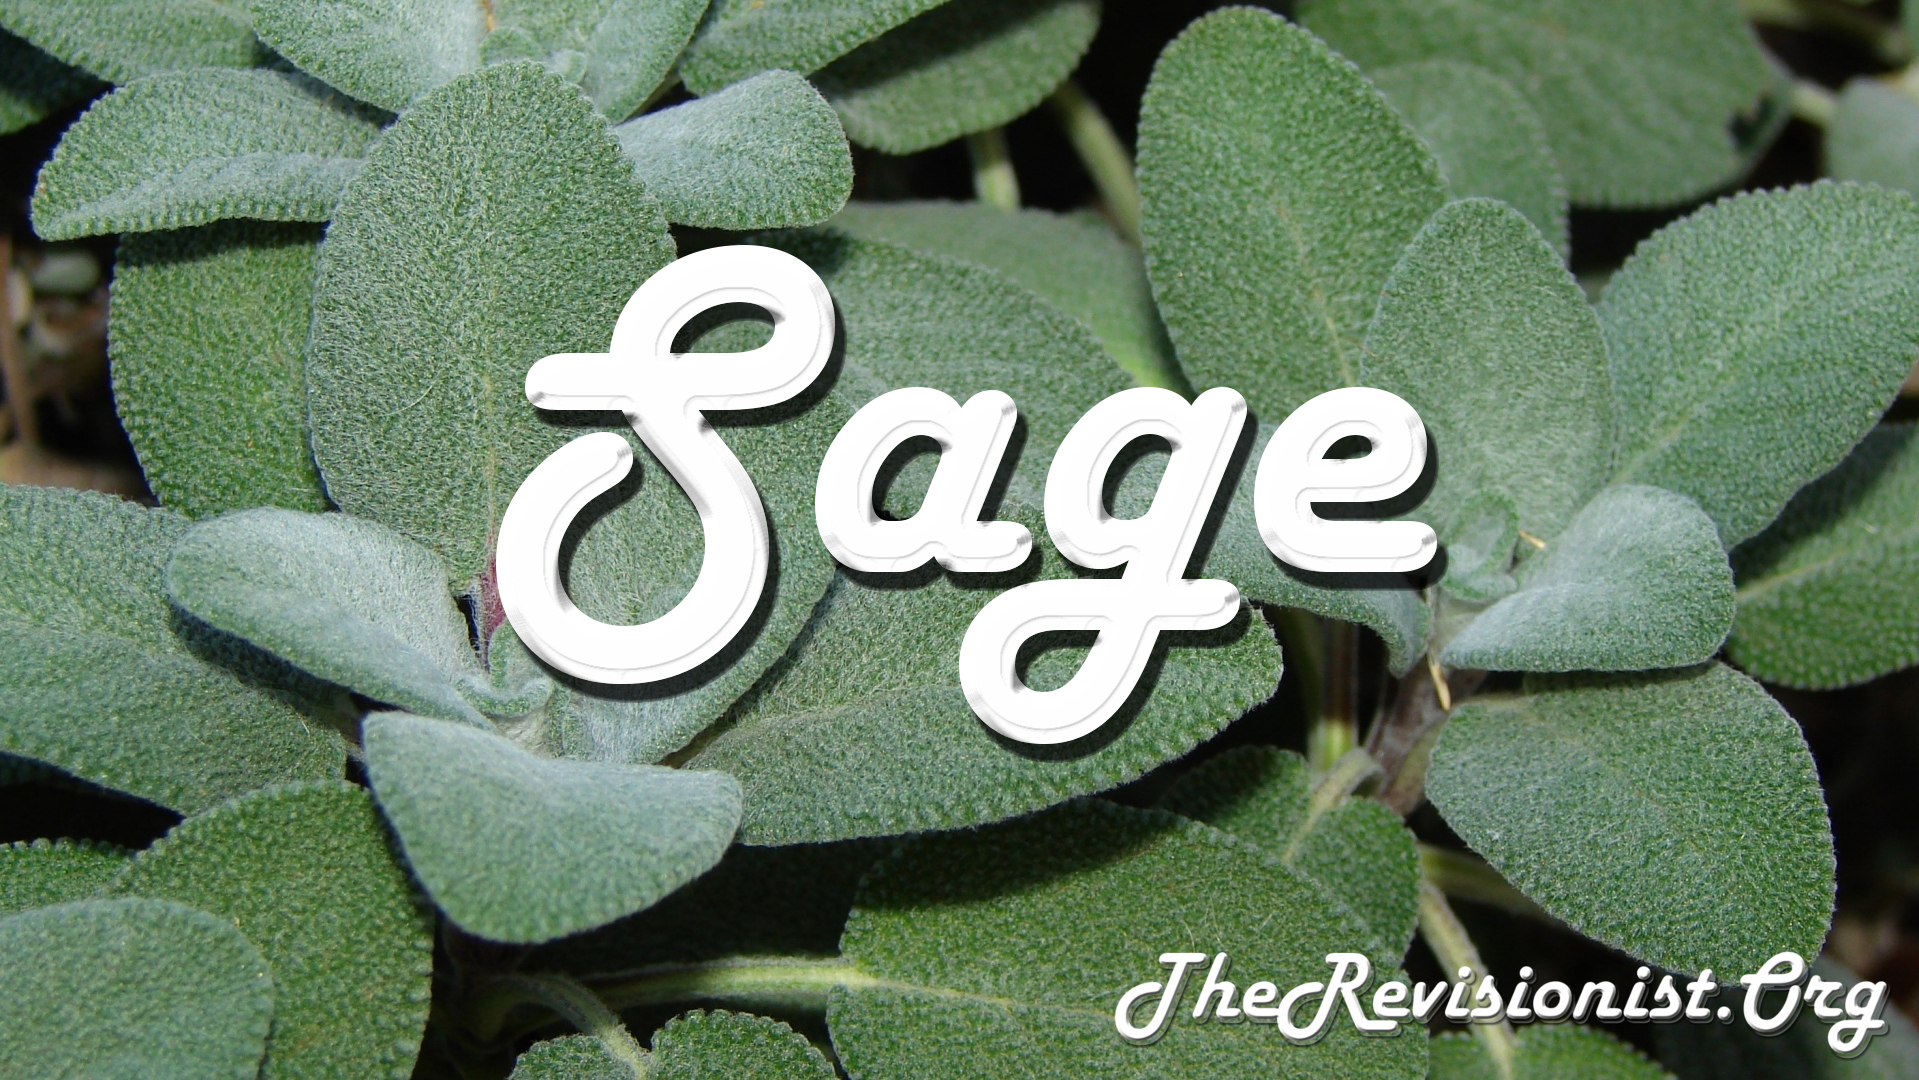 Sage (Salvia Officinalis) - The History, Properties, & Scent Profile